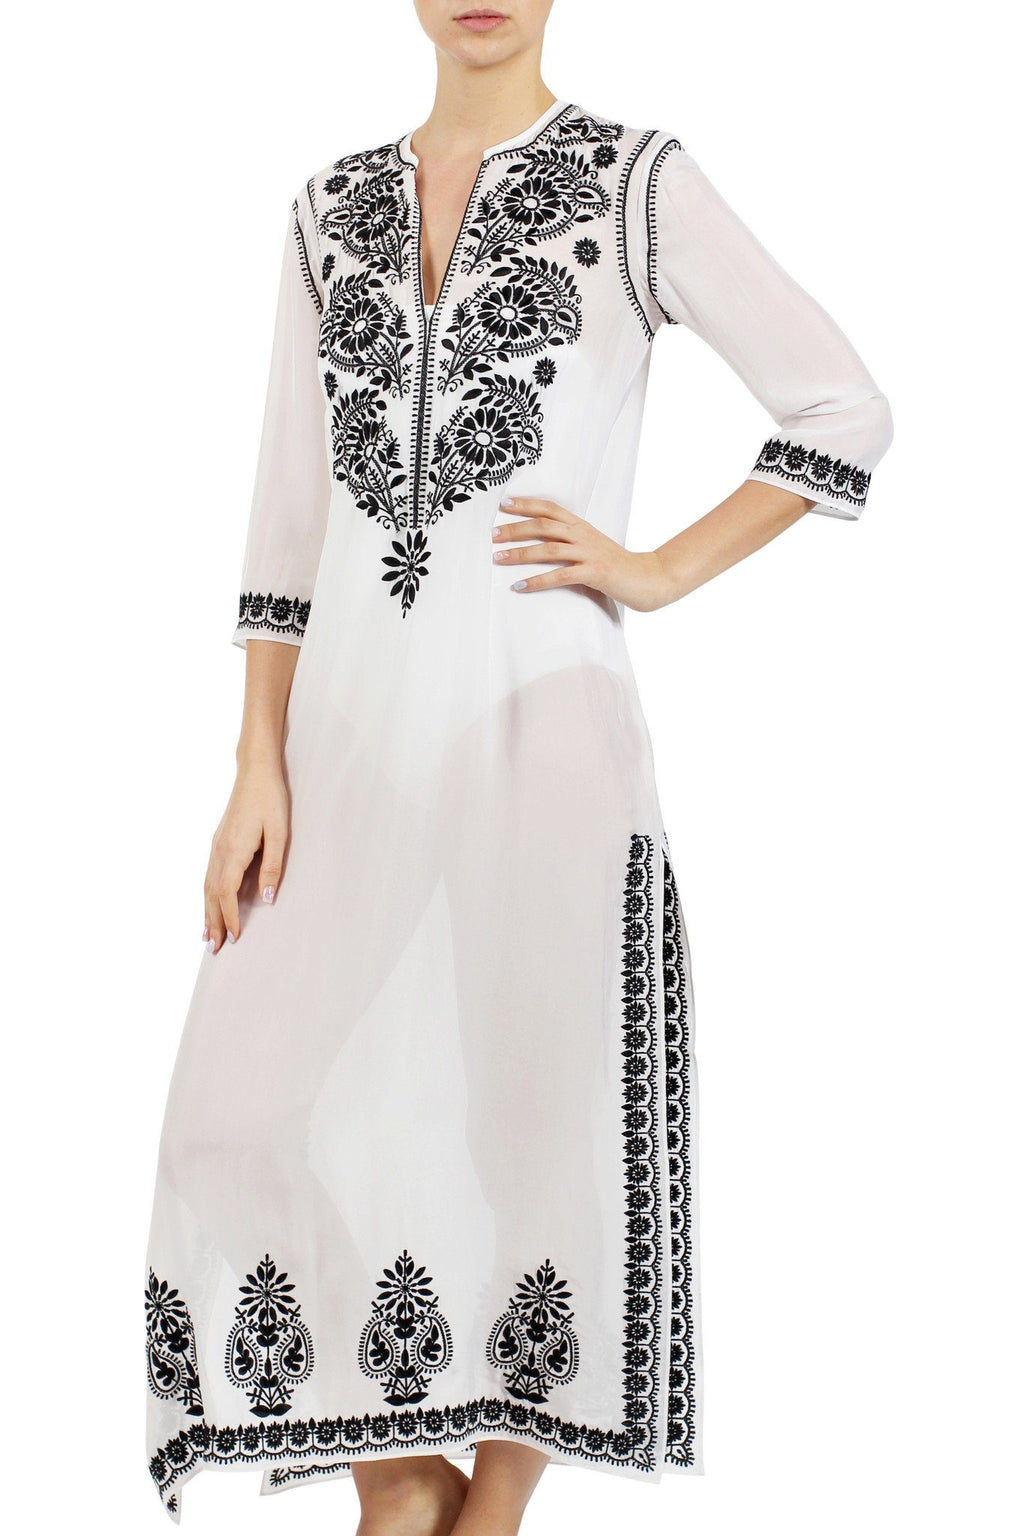 Embroidered Long Silk Chiffon Caftan Tunics Marie France Van Damme White Black 0